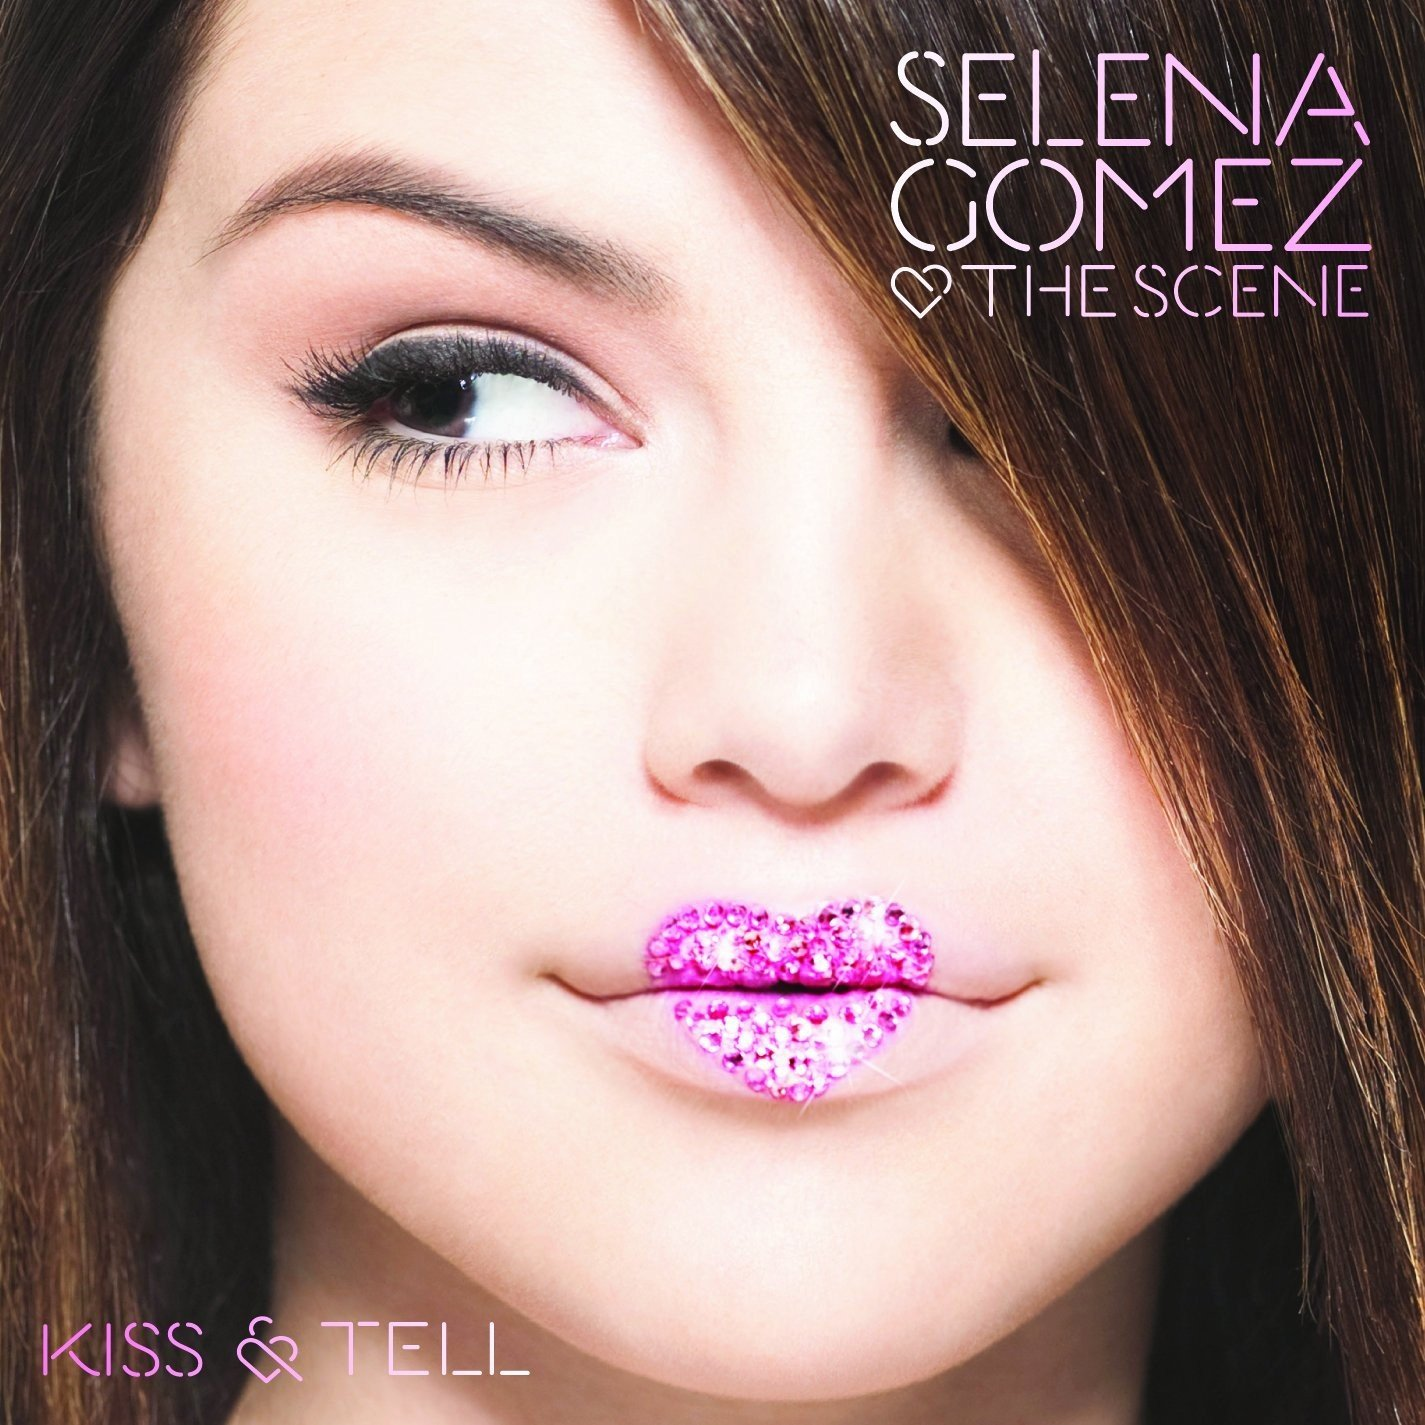 Selena Gomez (The Scene) - Kiss & Tell - Front.jpg